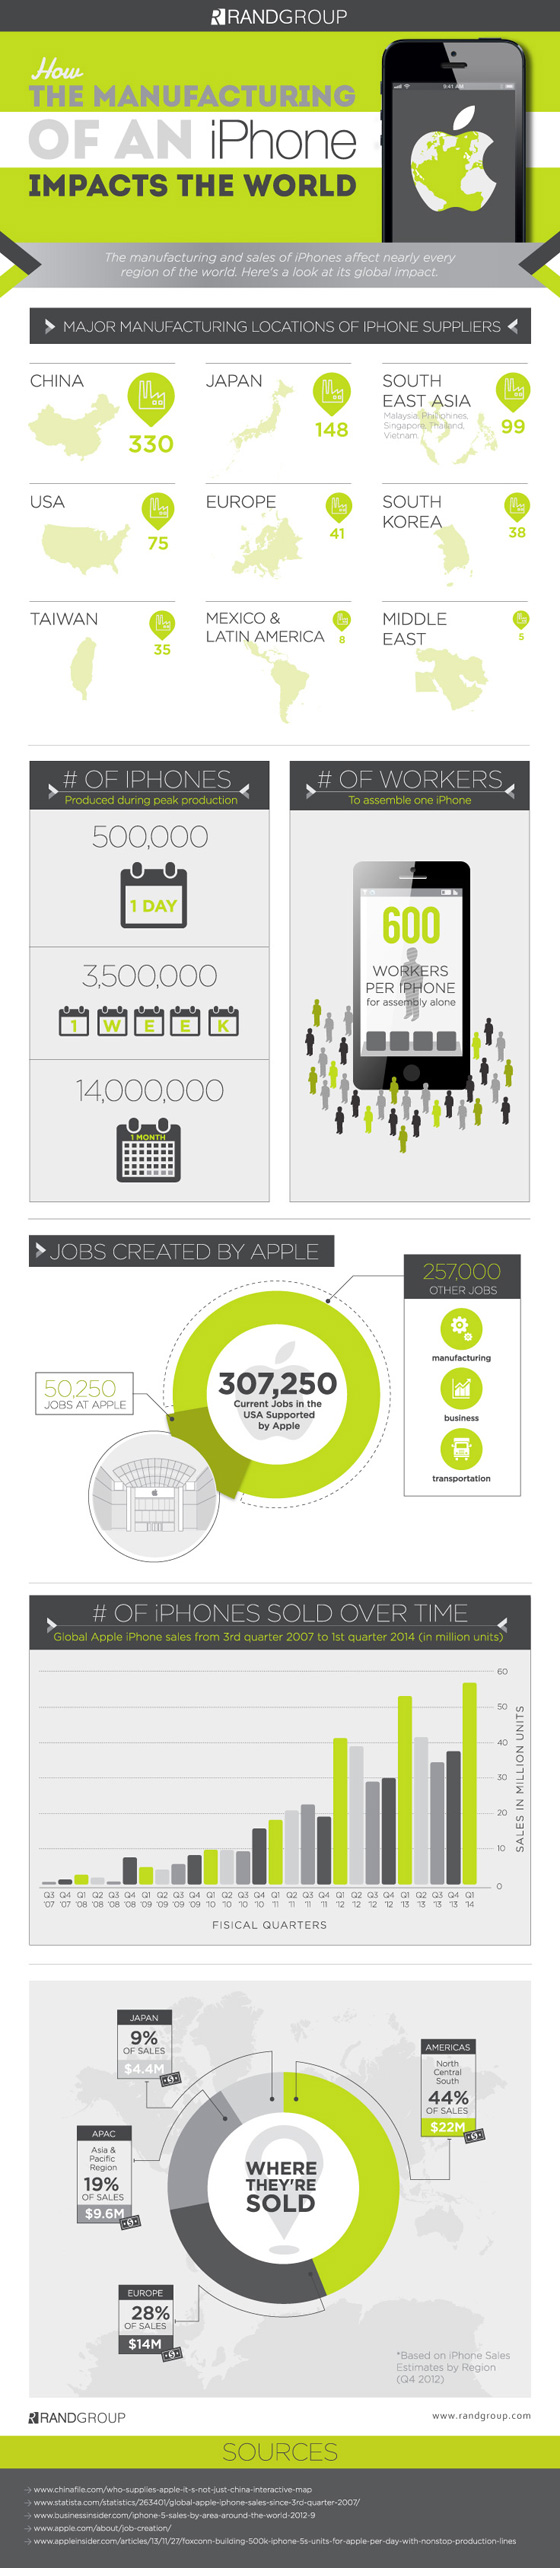 iphone-fabricage-infographic